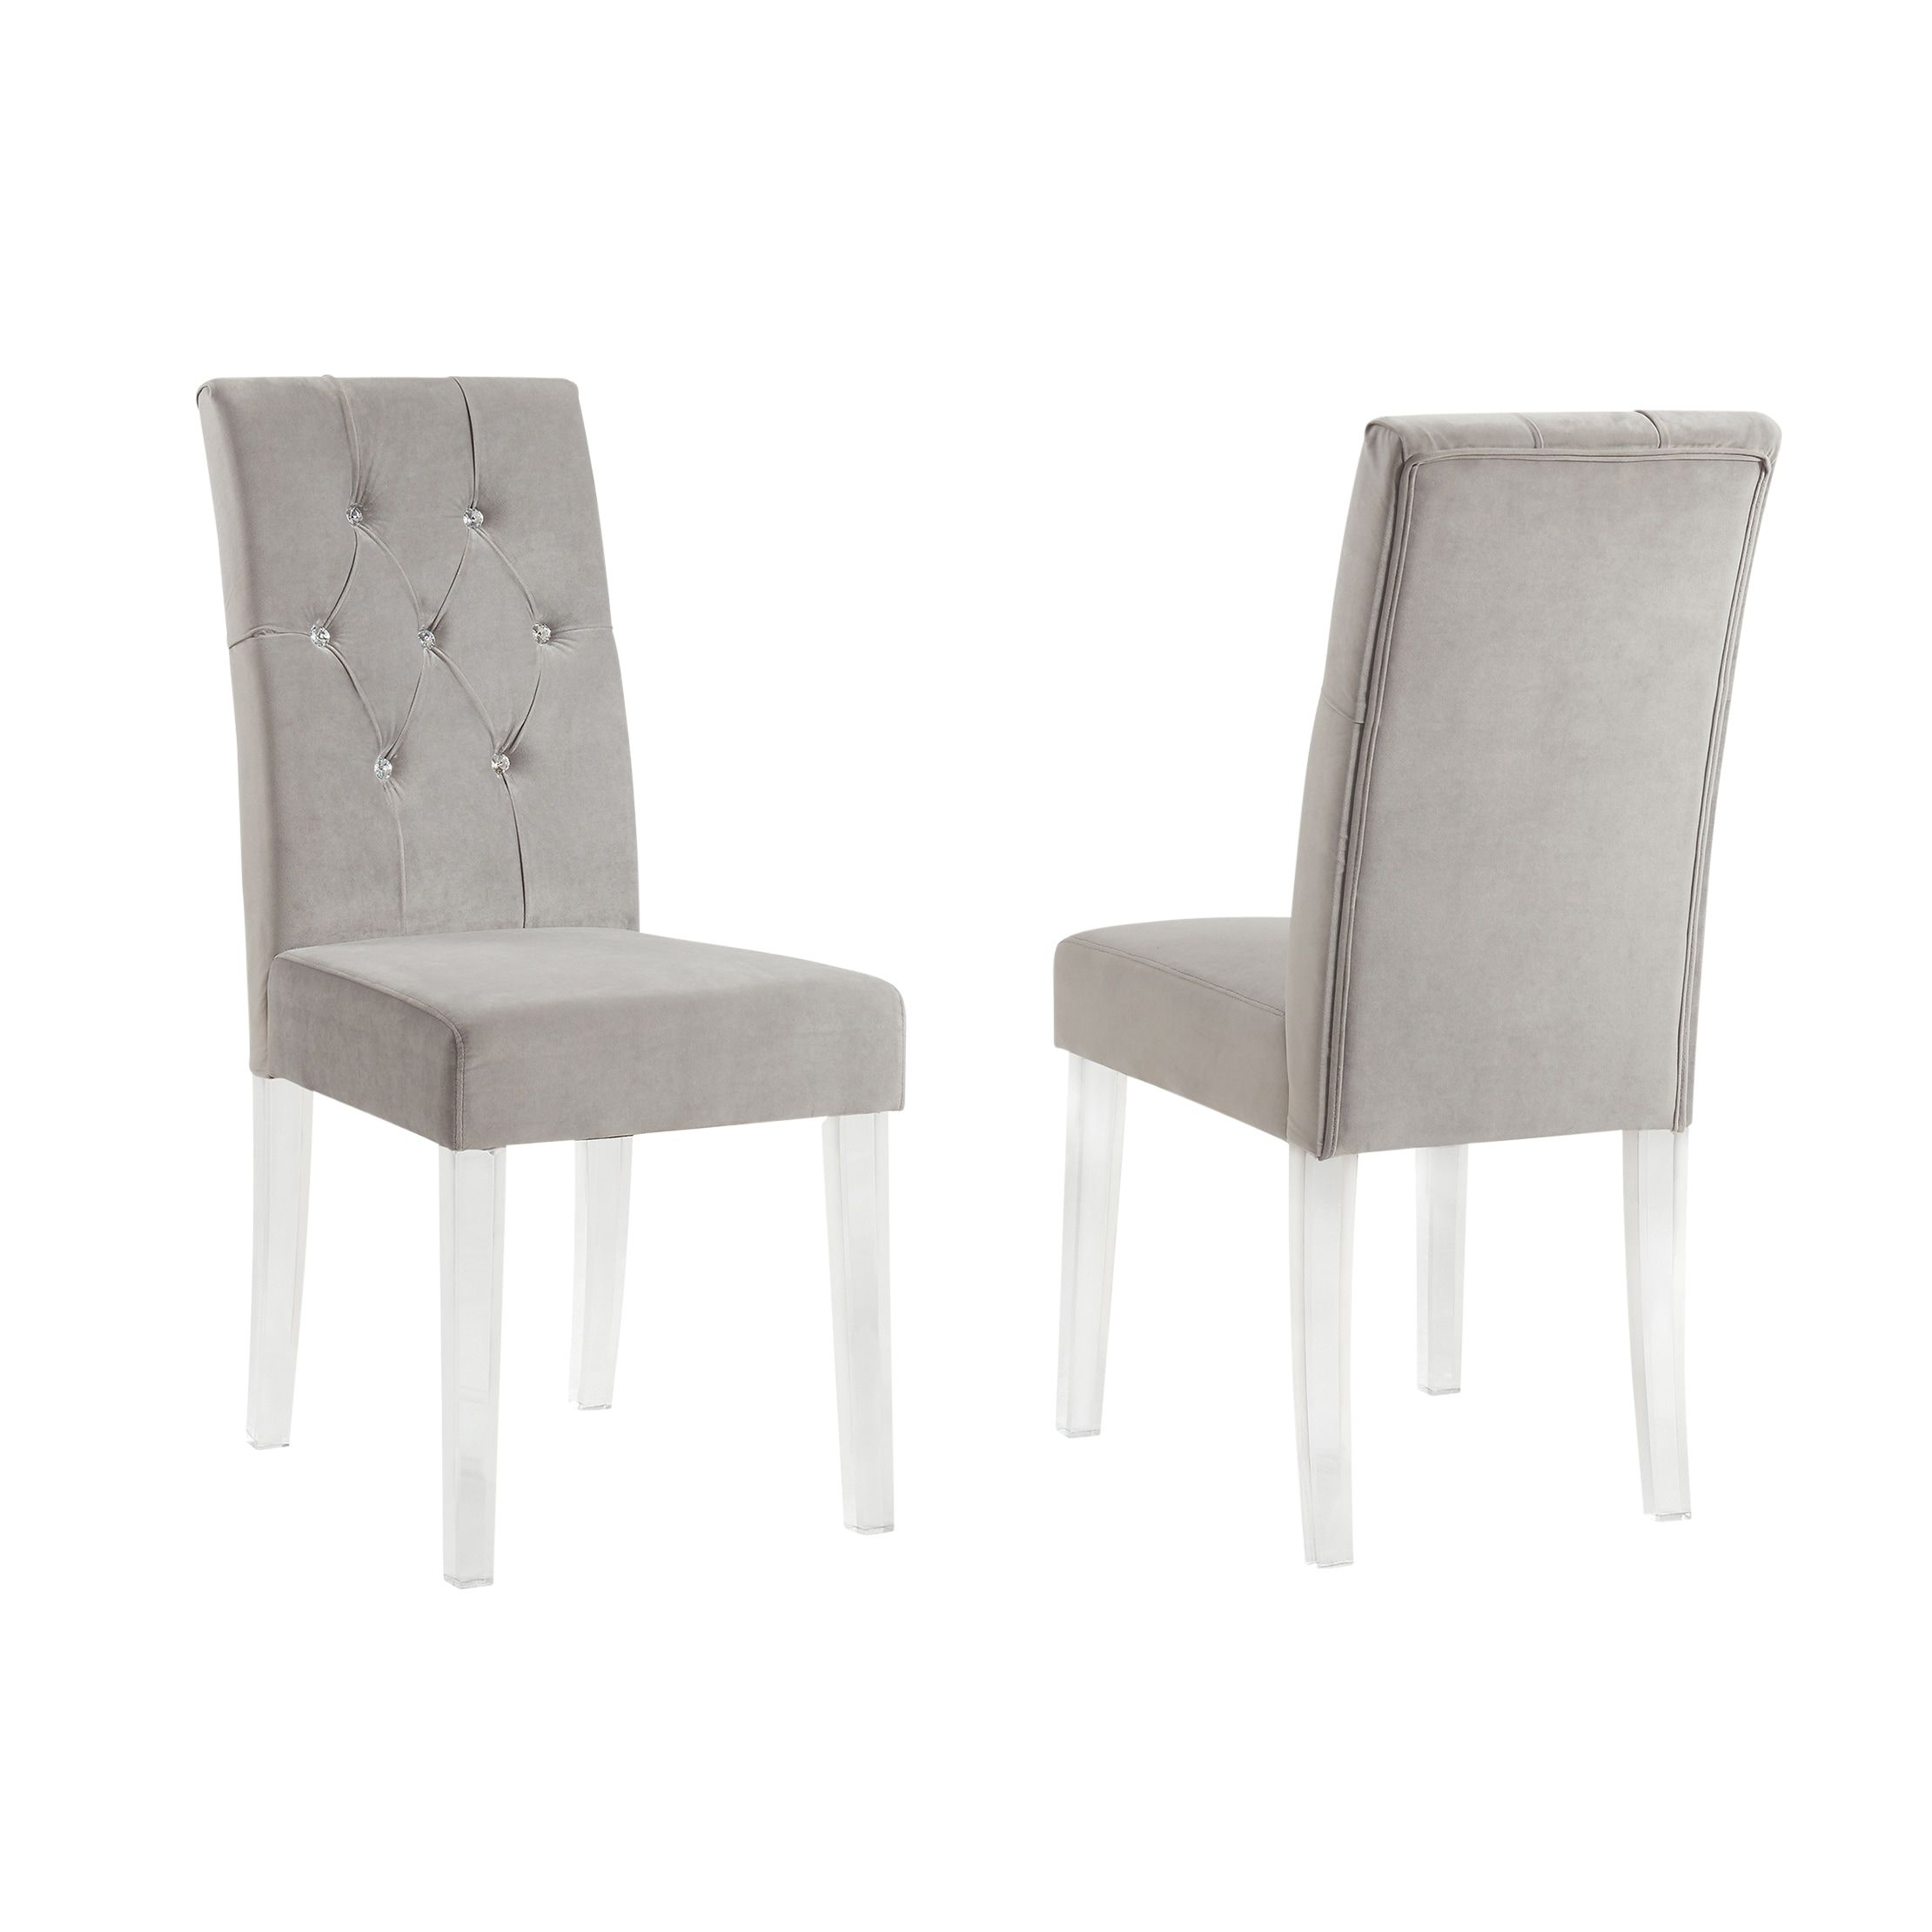 acrylic chair legs wide directors cavalli crystal studded velvet dining chairs with